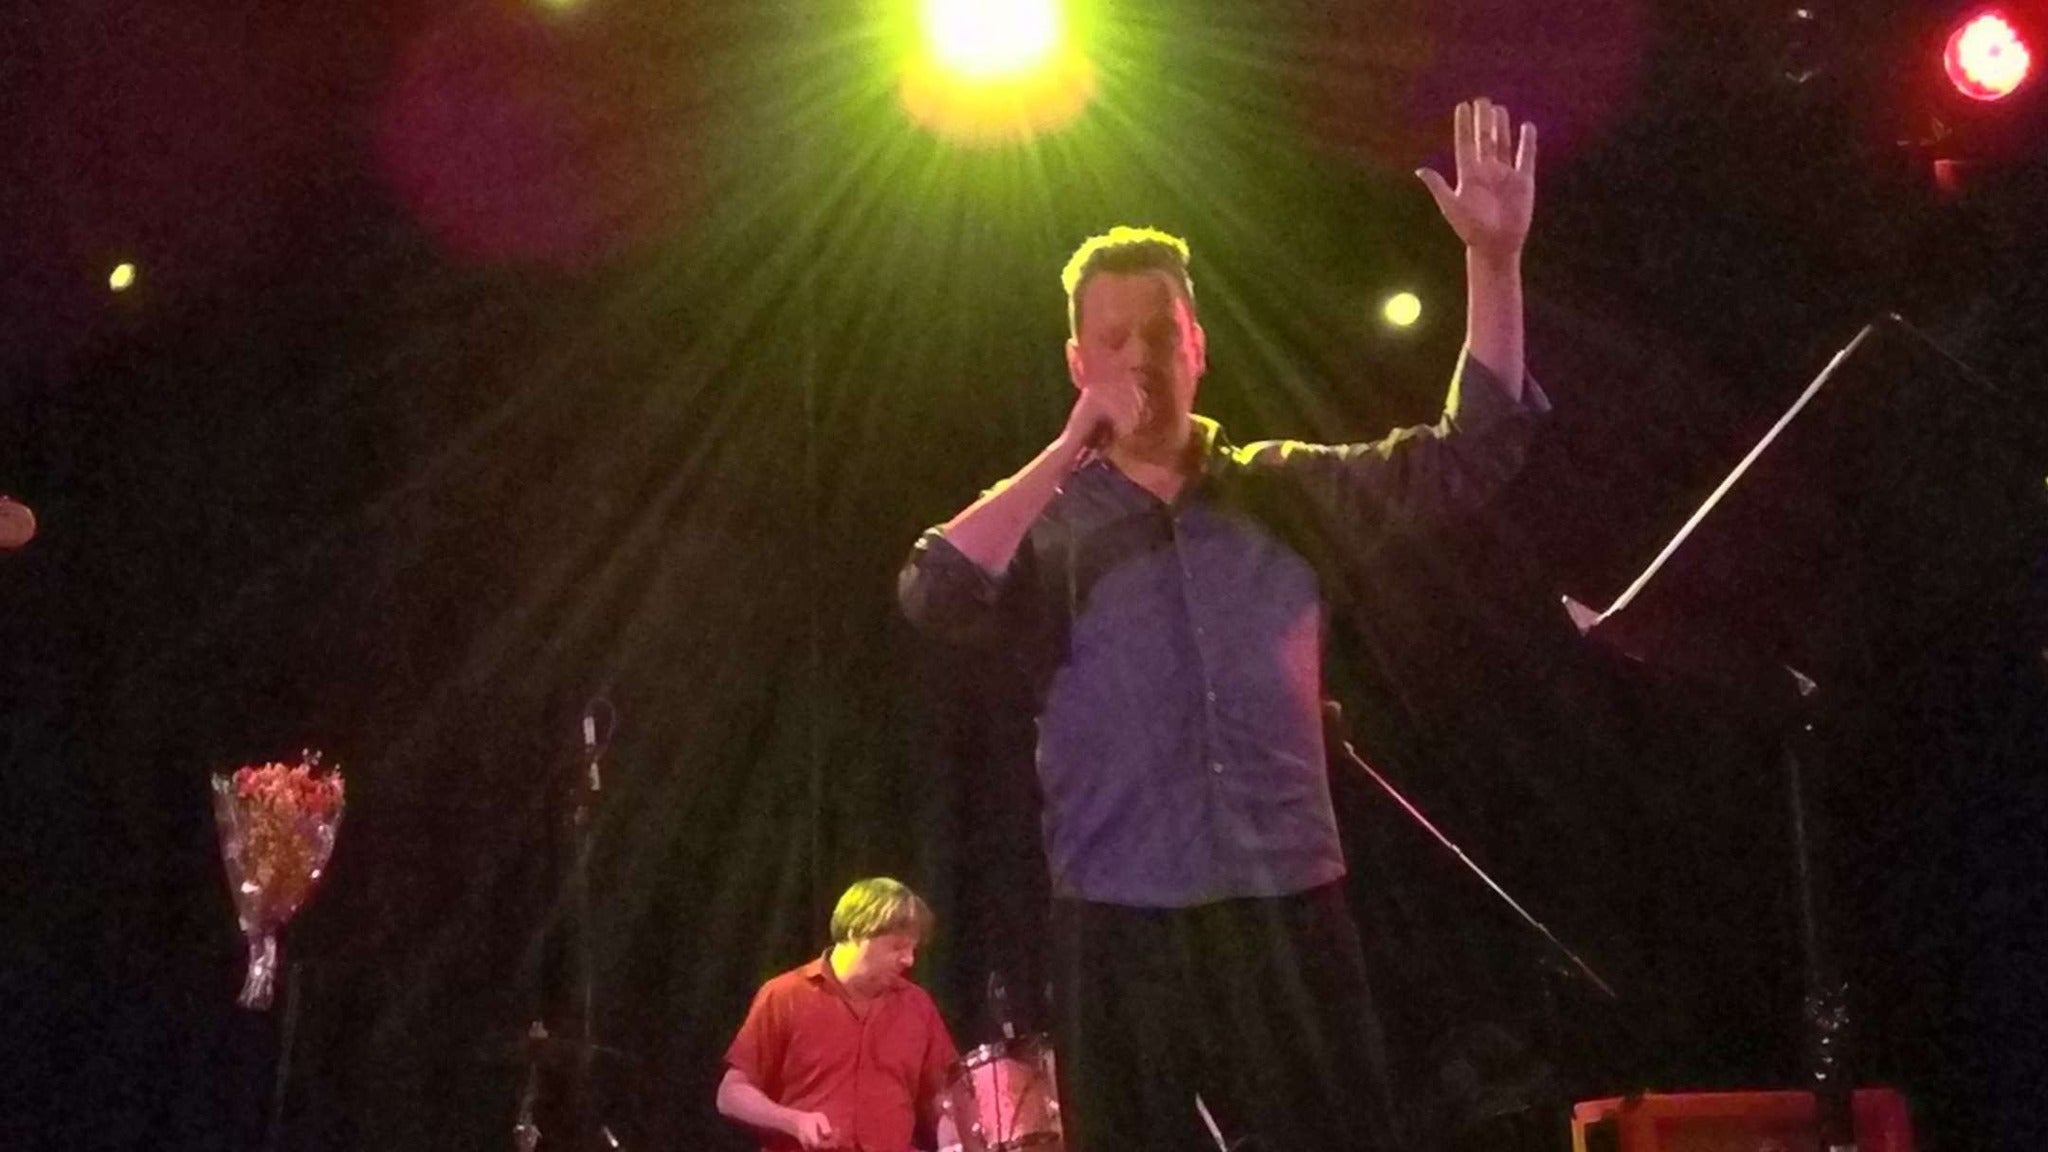 Sun Kil Moon at The Fillmore